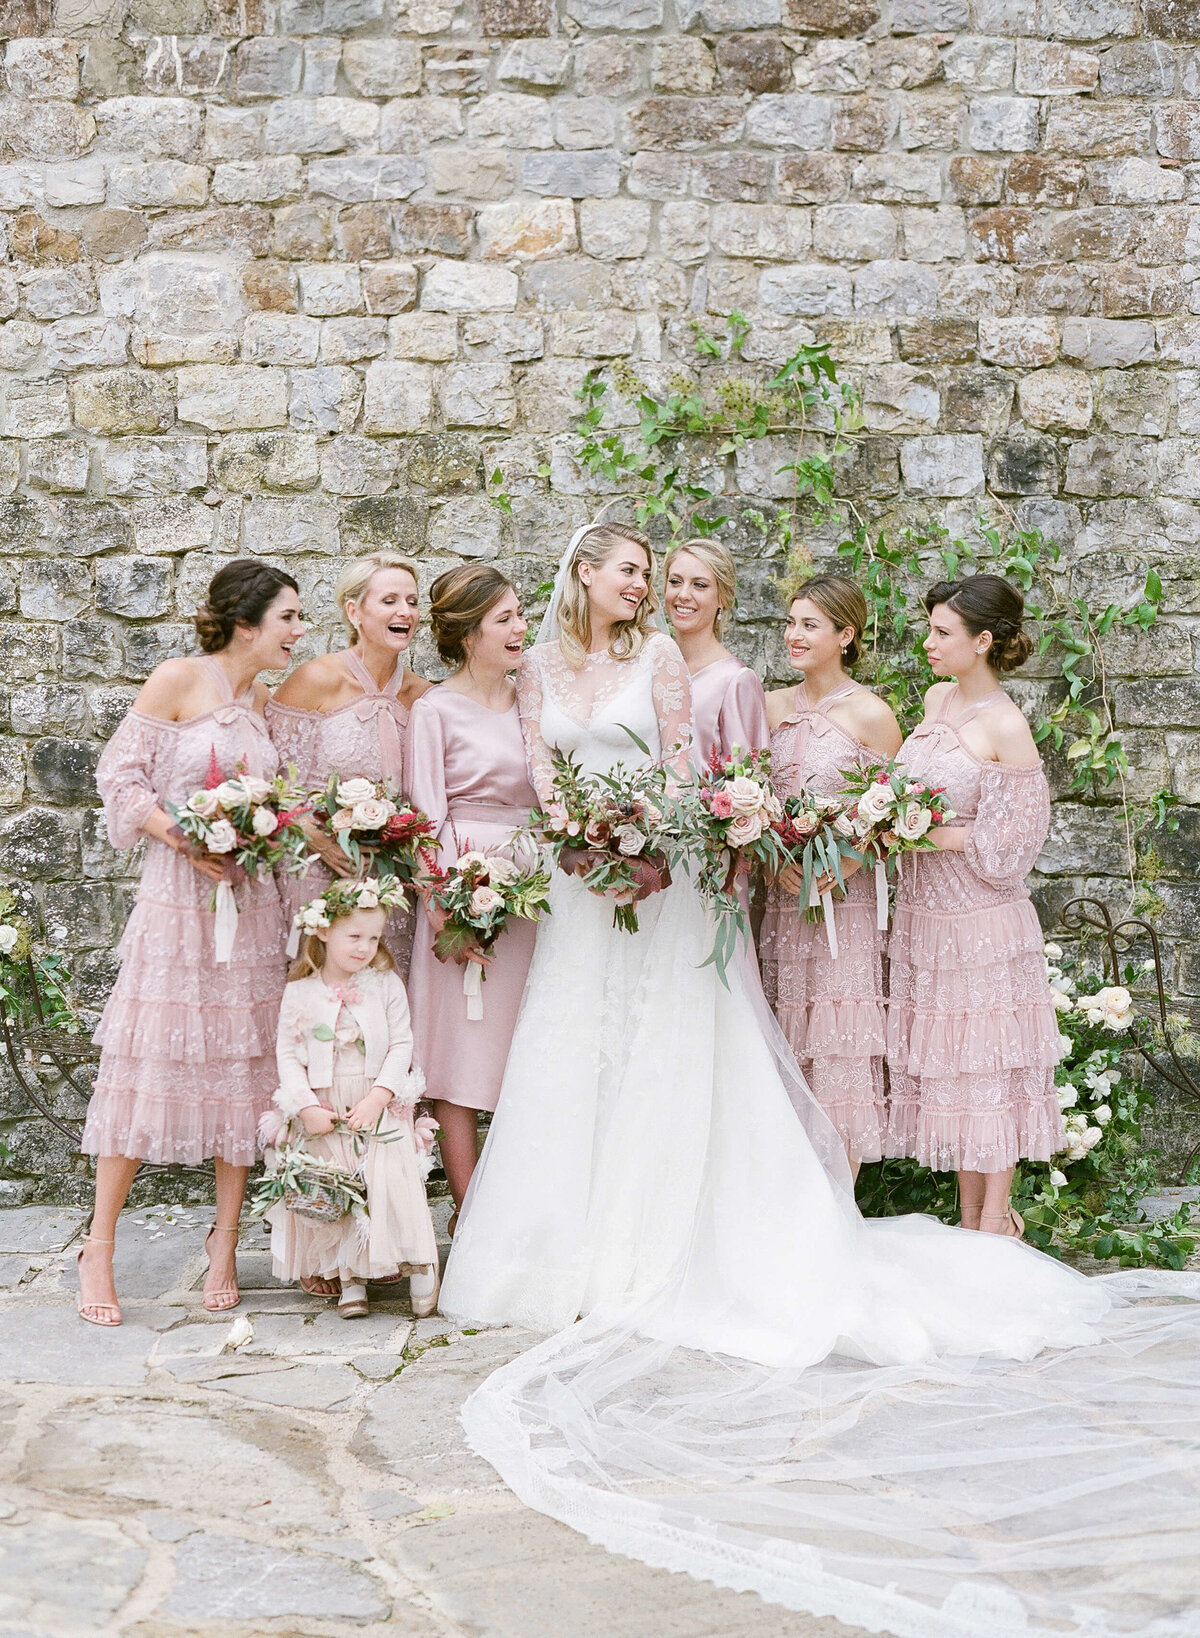 13-KTMerry-weddings-Kate-Upton-bridal-party-Tuscany